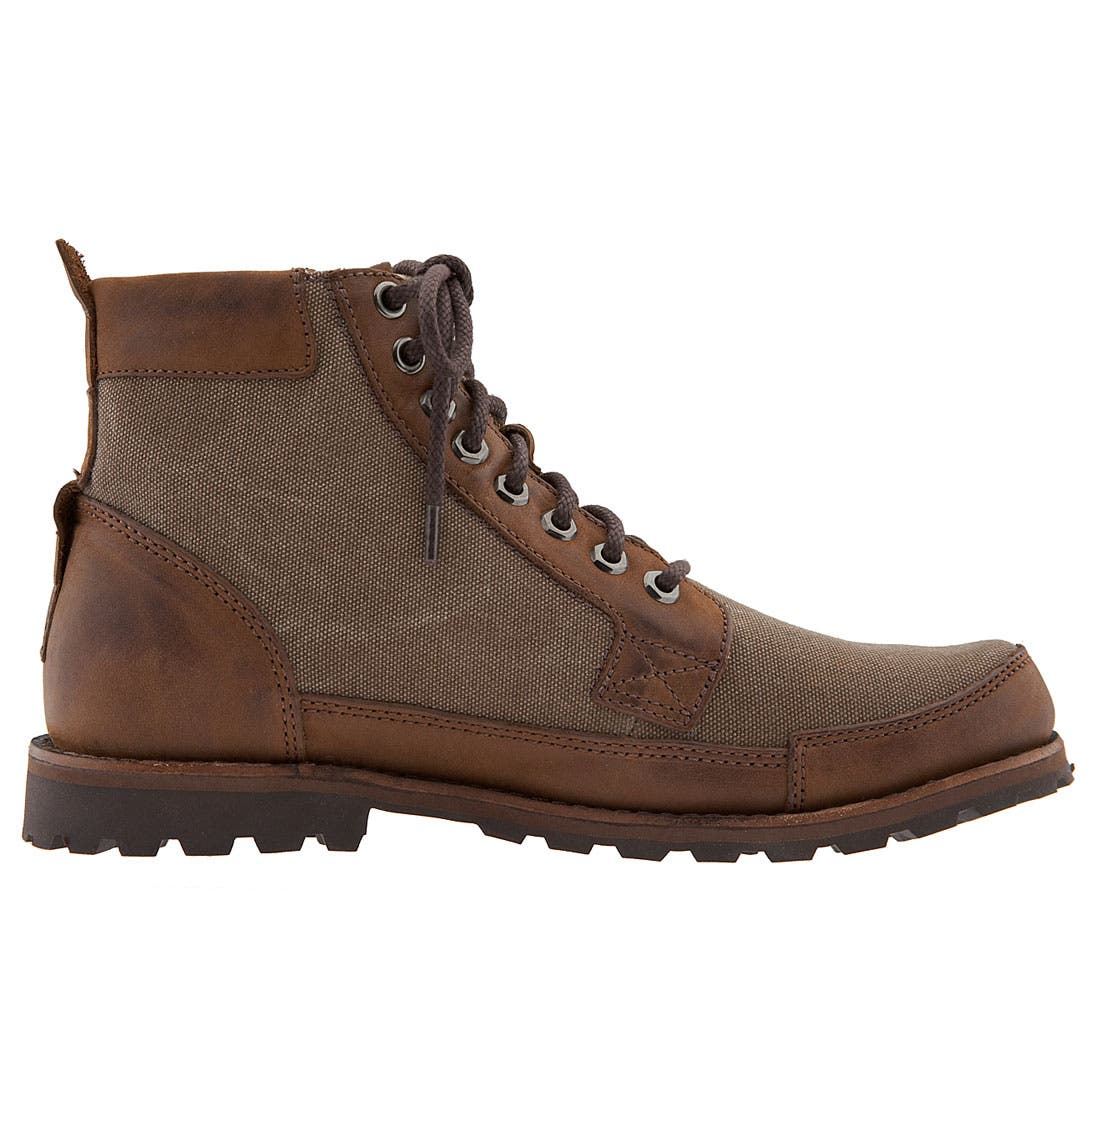 Earthkeepers<sup>®</sup> Lace-Up Boot,                             Alternate thumbnail 3, color,                             214